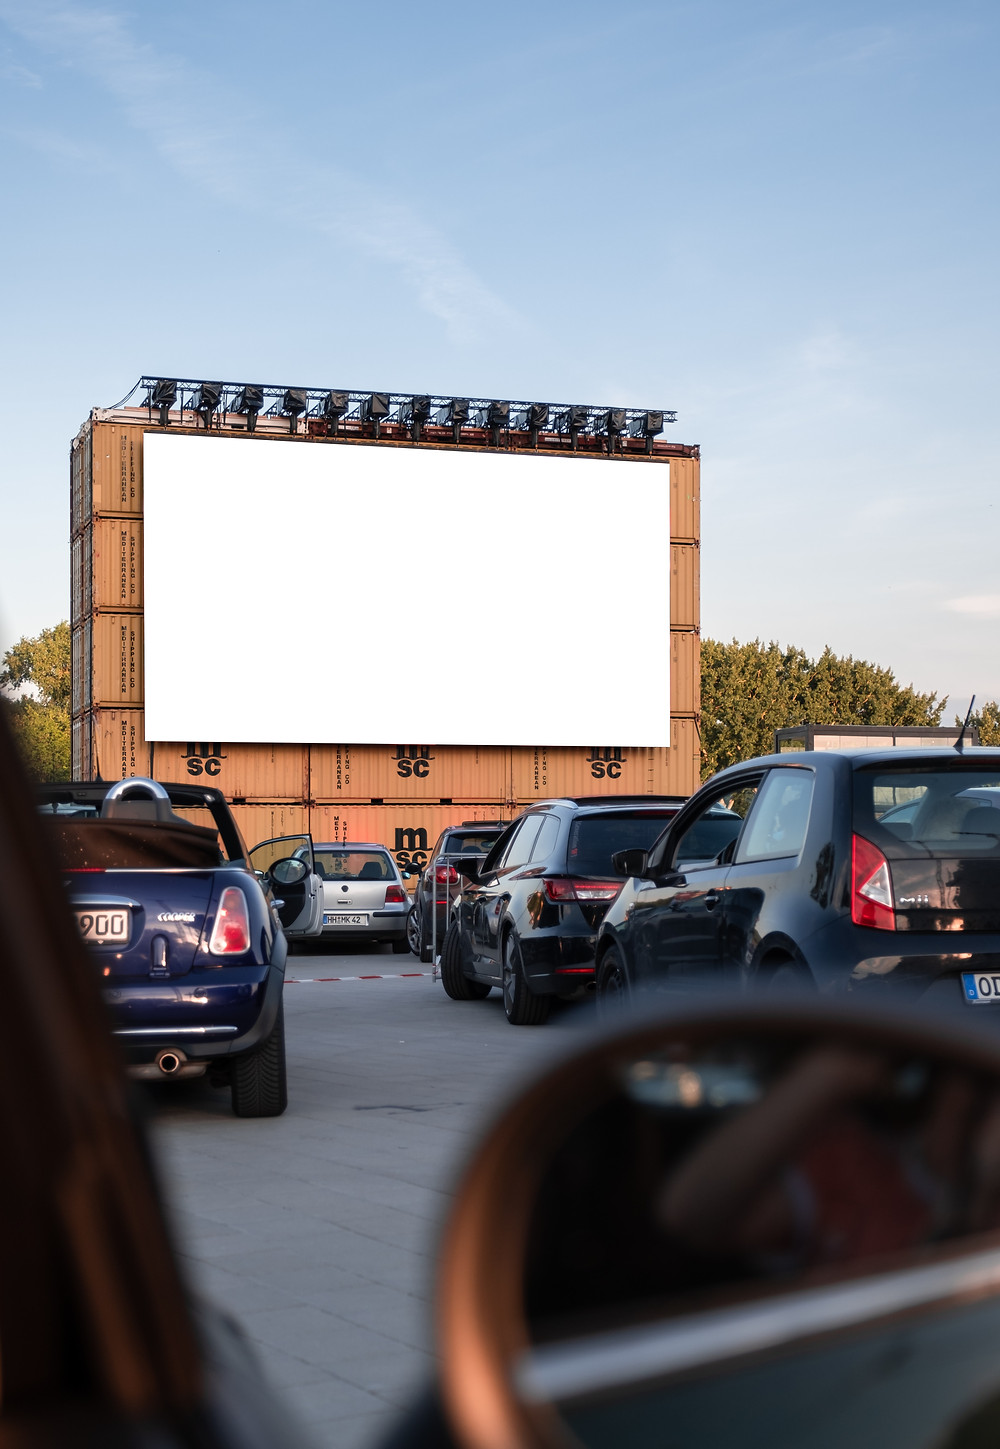 drive-in movie theater in the daytime